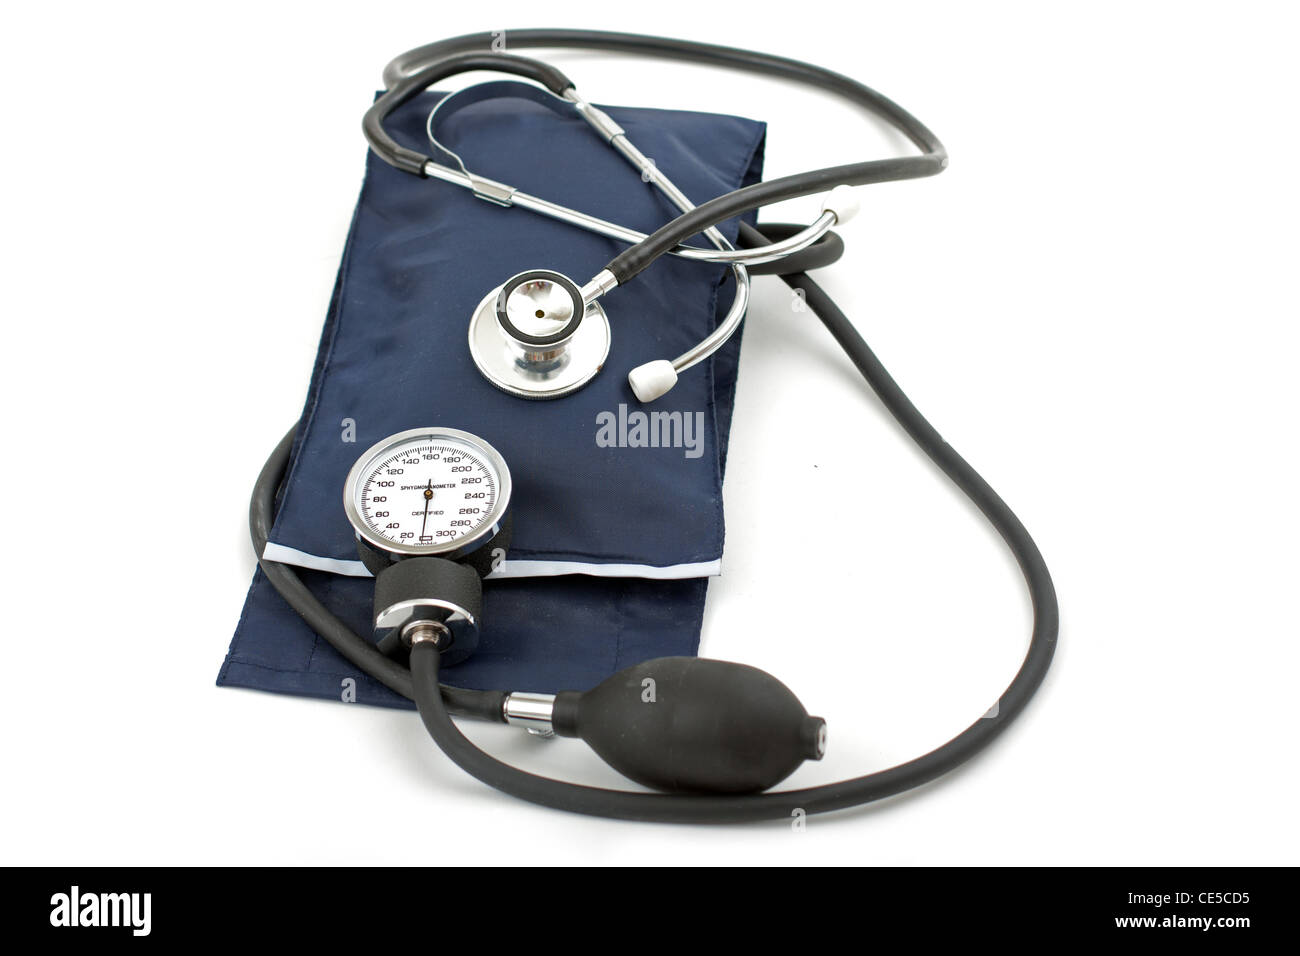 Blood pressure meter and stethoscope, isolated on white - Stock Image